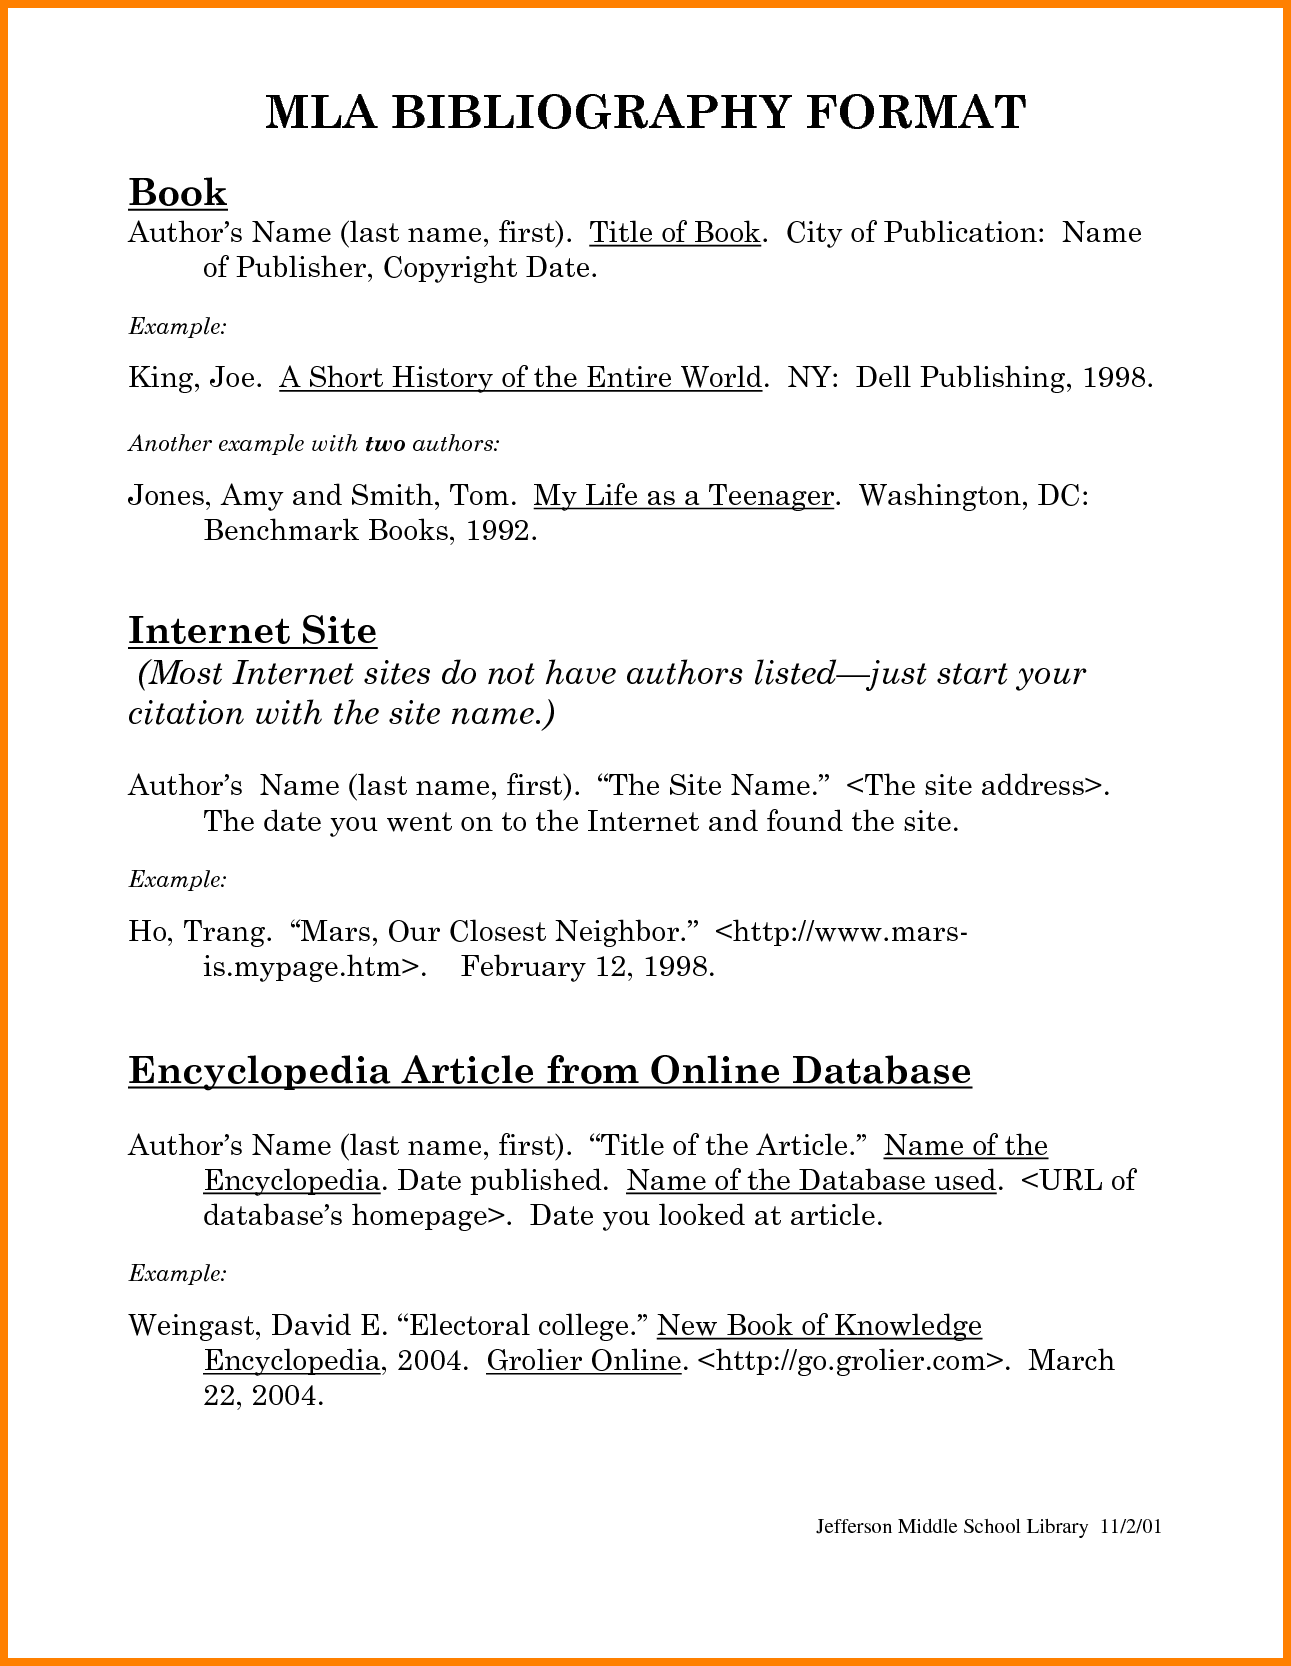 mla format bibliographic essay Creating an annotated bibliography in mla style  however, battle does offer a  valuable source for this essay, because the chapter provides a.